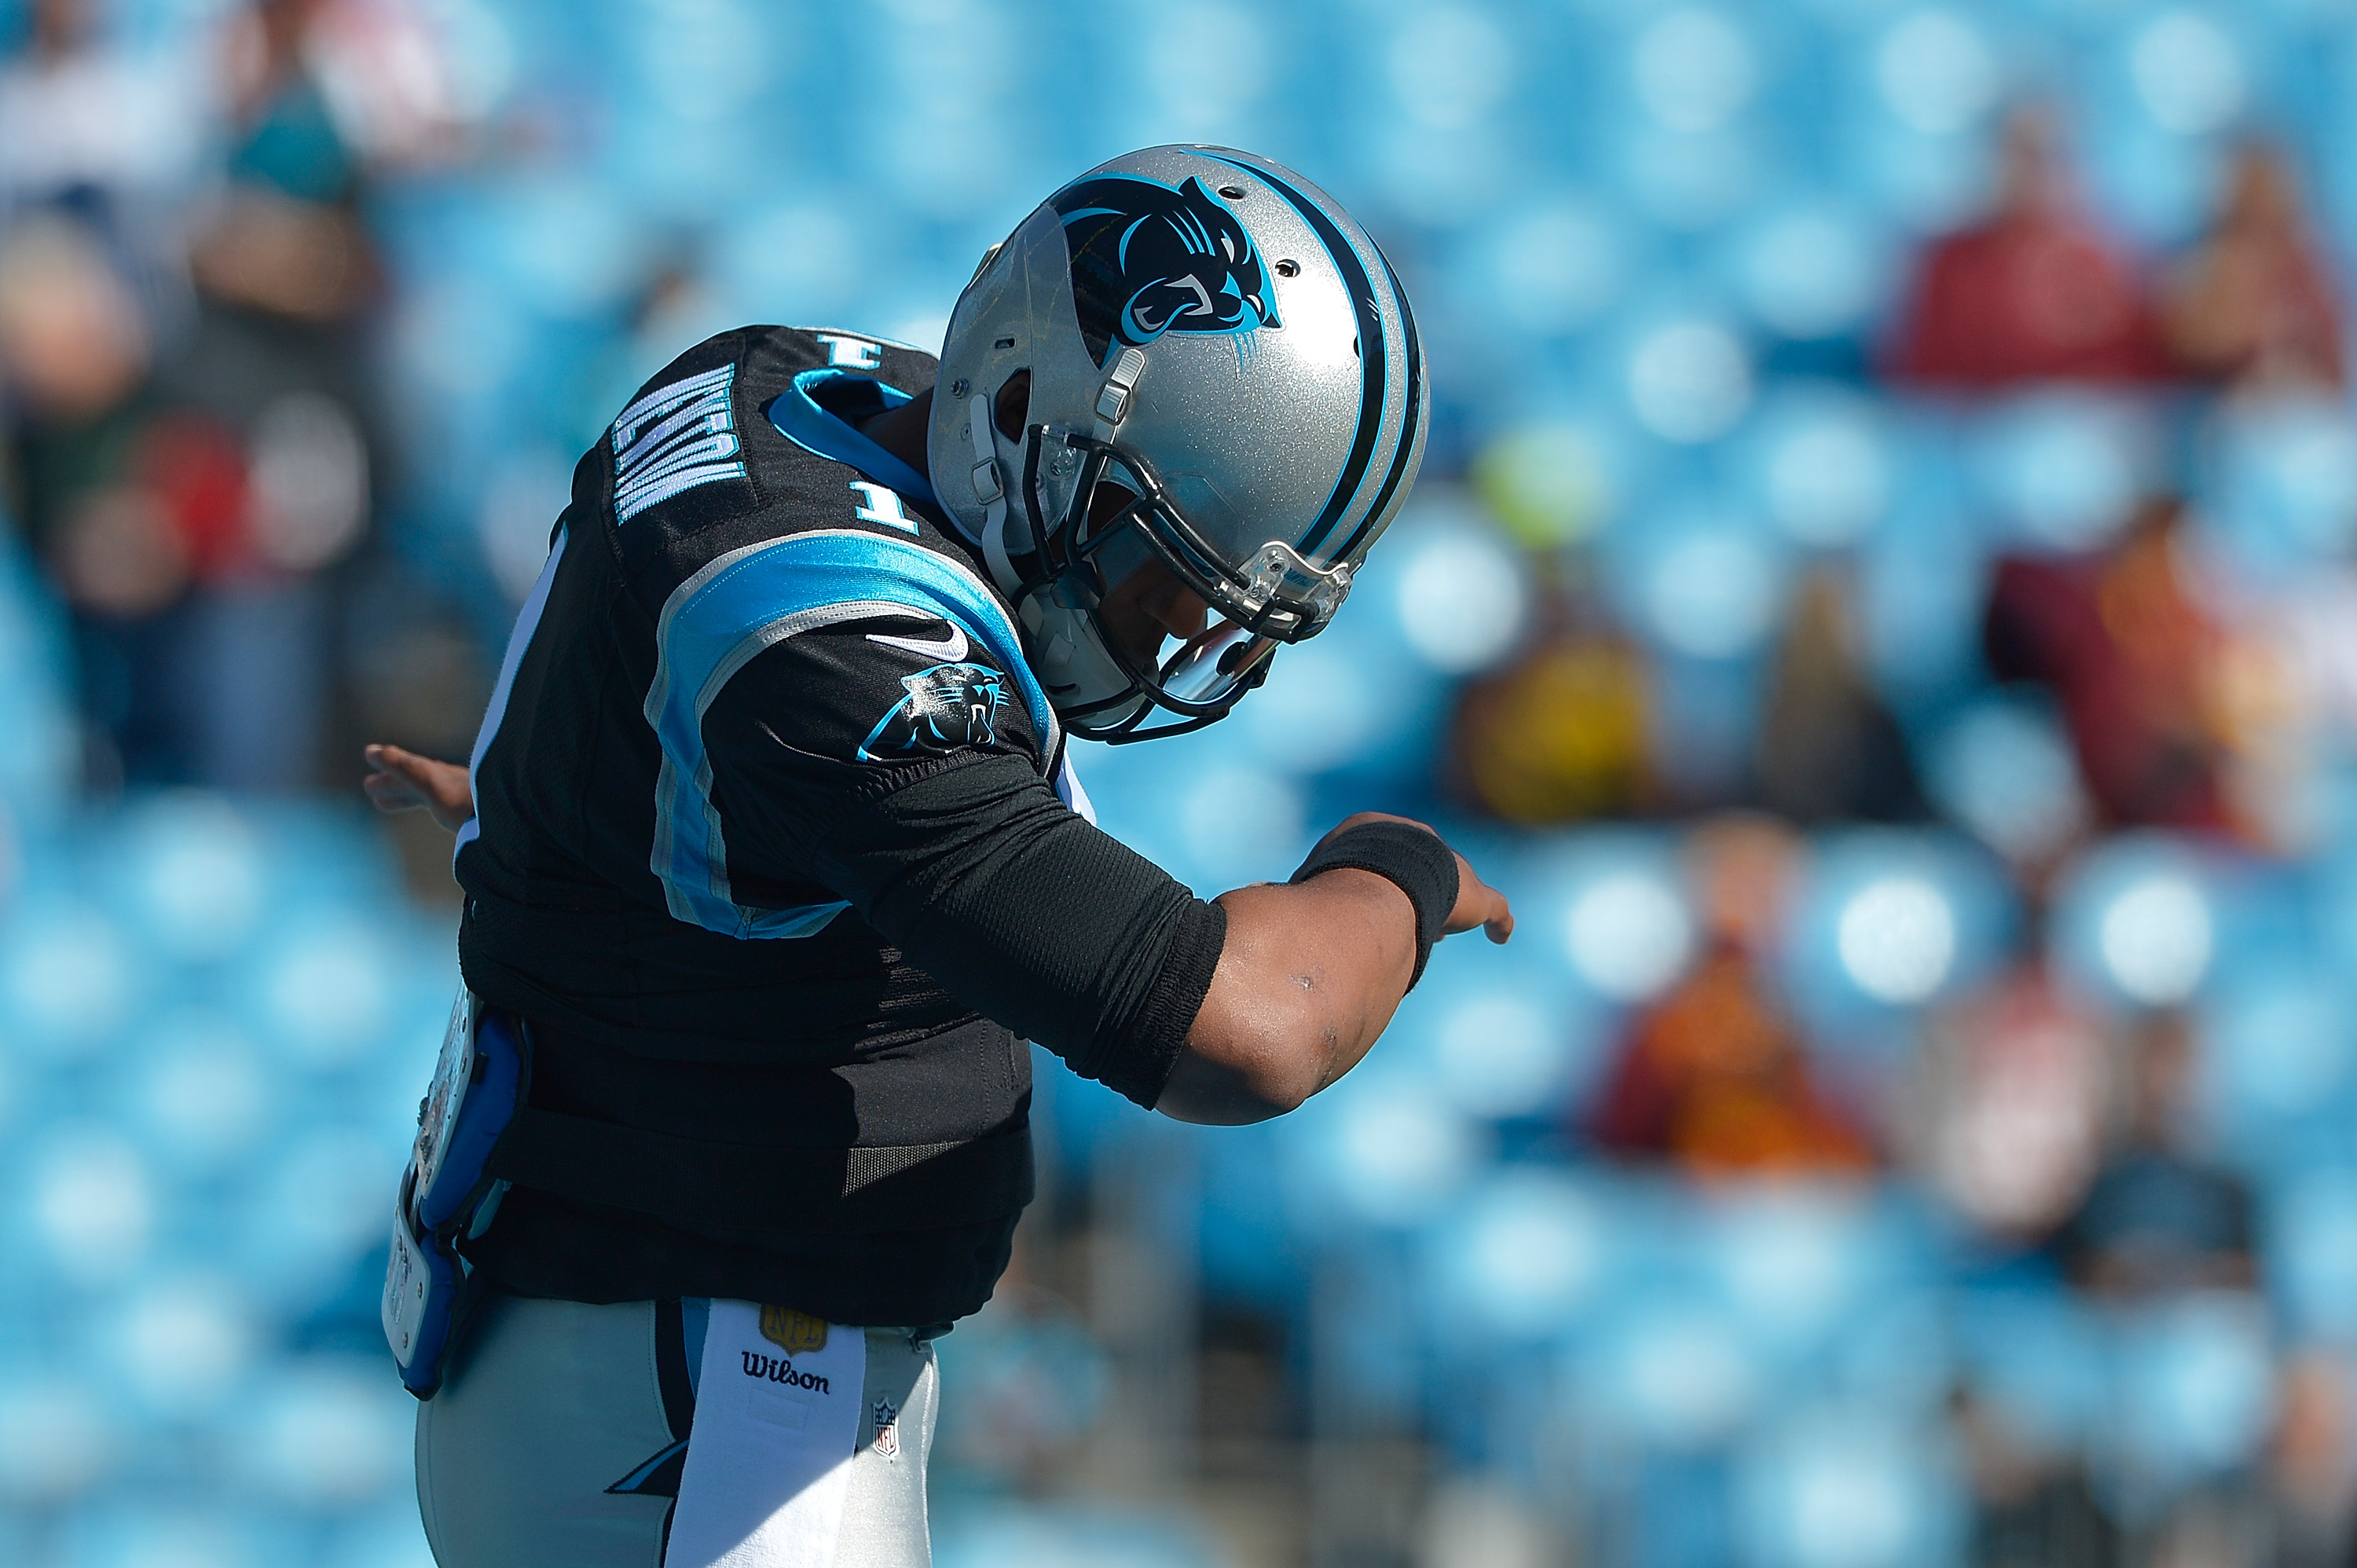 Cam Newton #1 of the Carolina Panthers dances The Dab as he warms up during their game against the Washington Redskins at Bank of America Stadium on November 22, 2015 in Charlotte, North Carolina. The Panthers won 44-16.